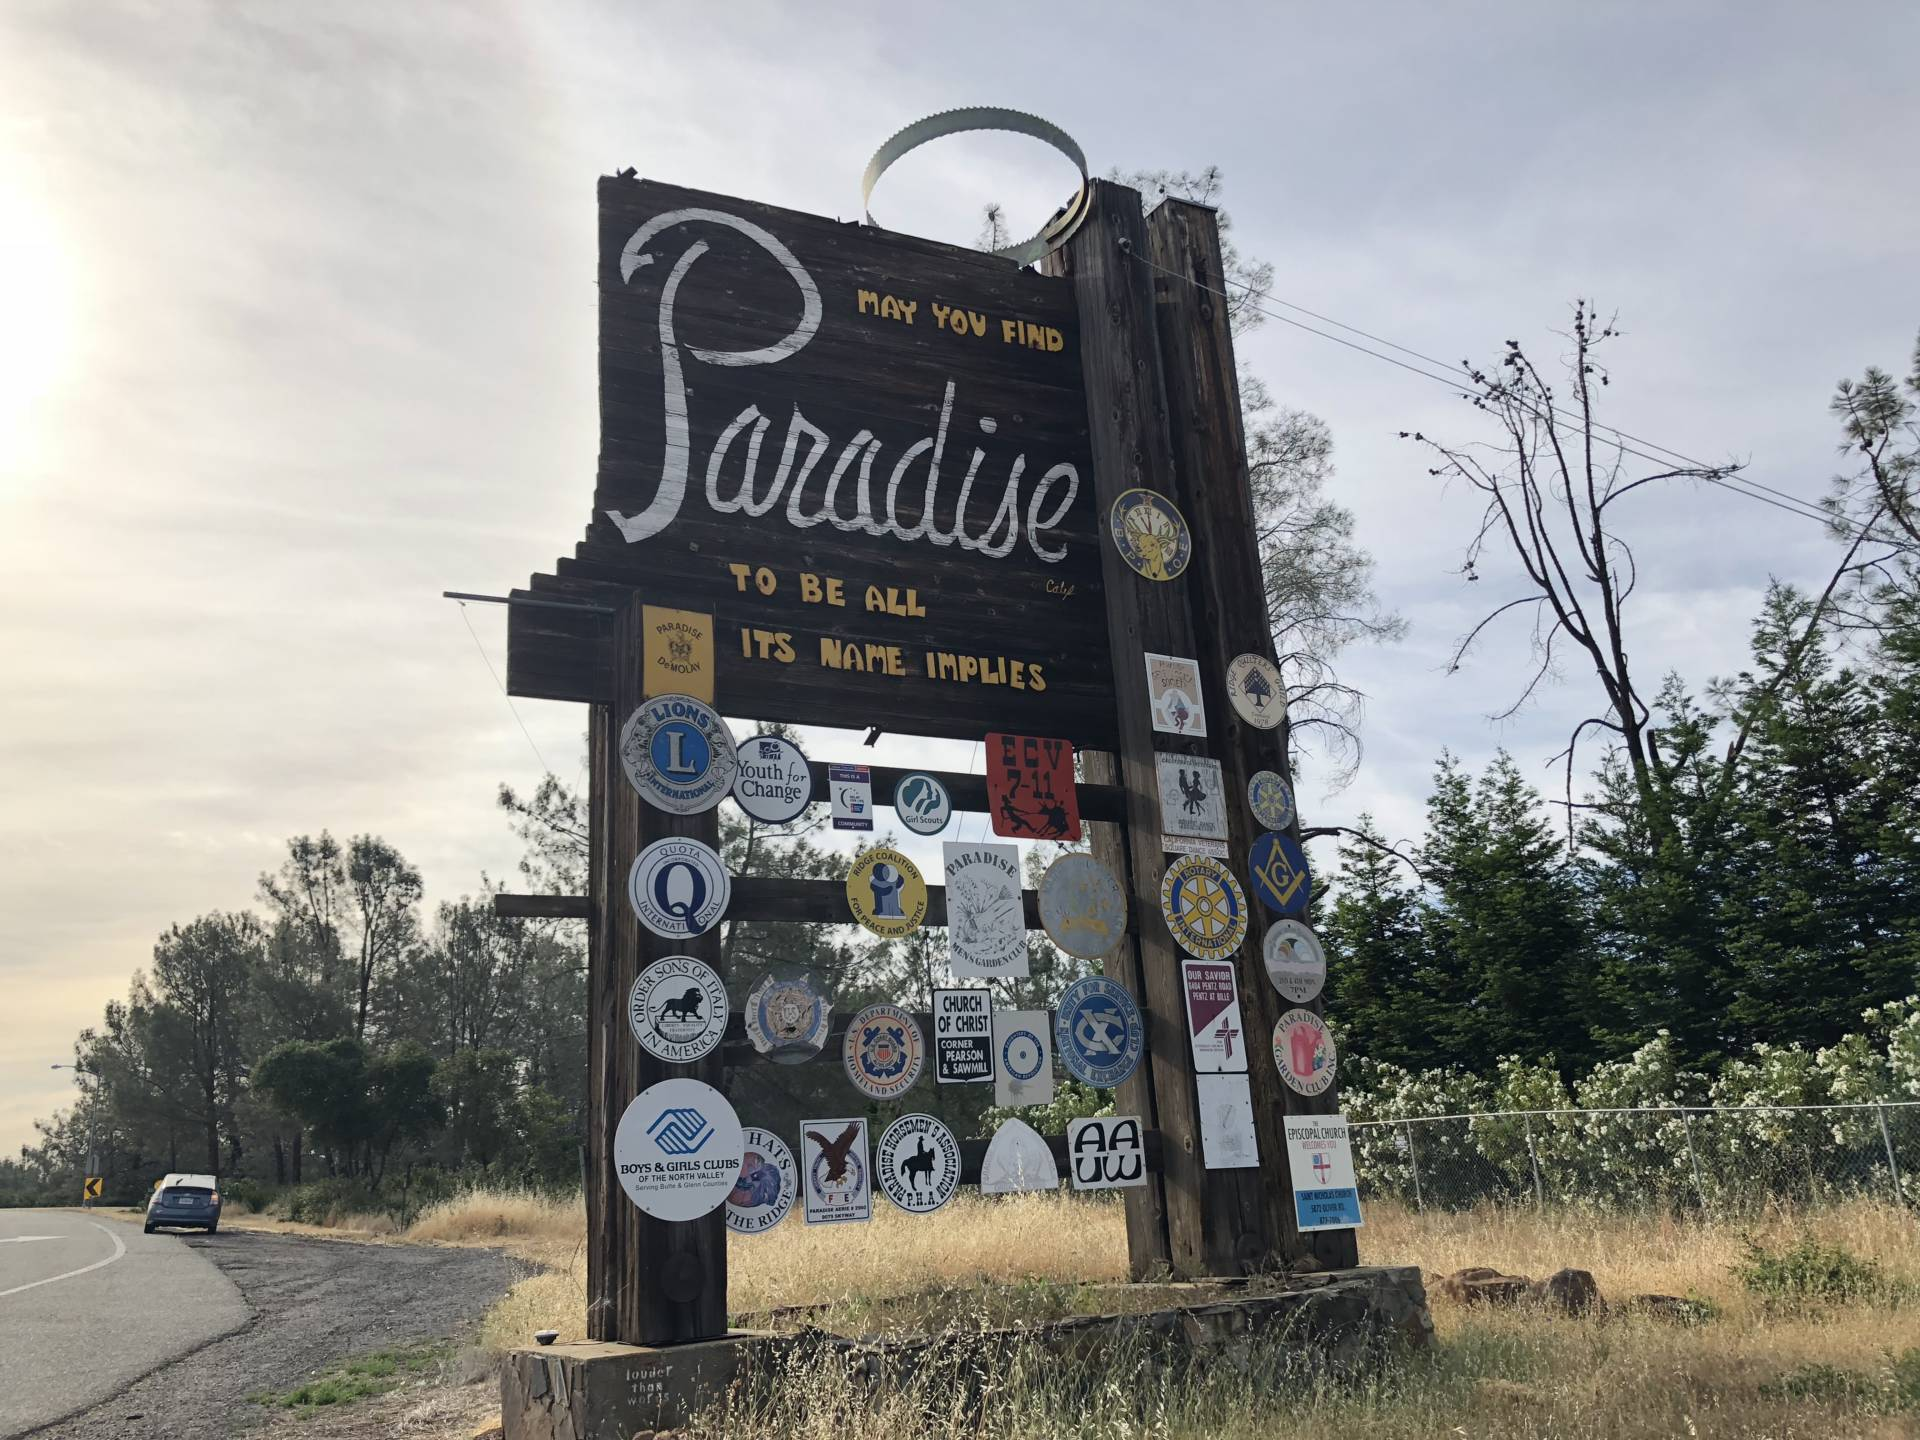 """The sign that welcomed those driving into Paradise read, """"May you find Paradise to be all its name implies."""" That sign burned down this week. Laura Klivans/KQED"""